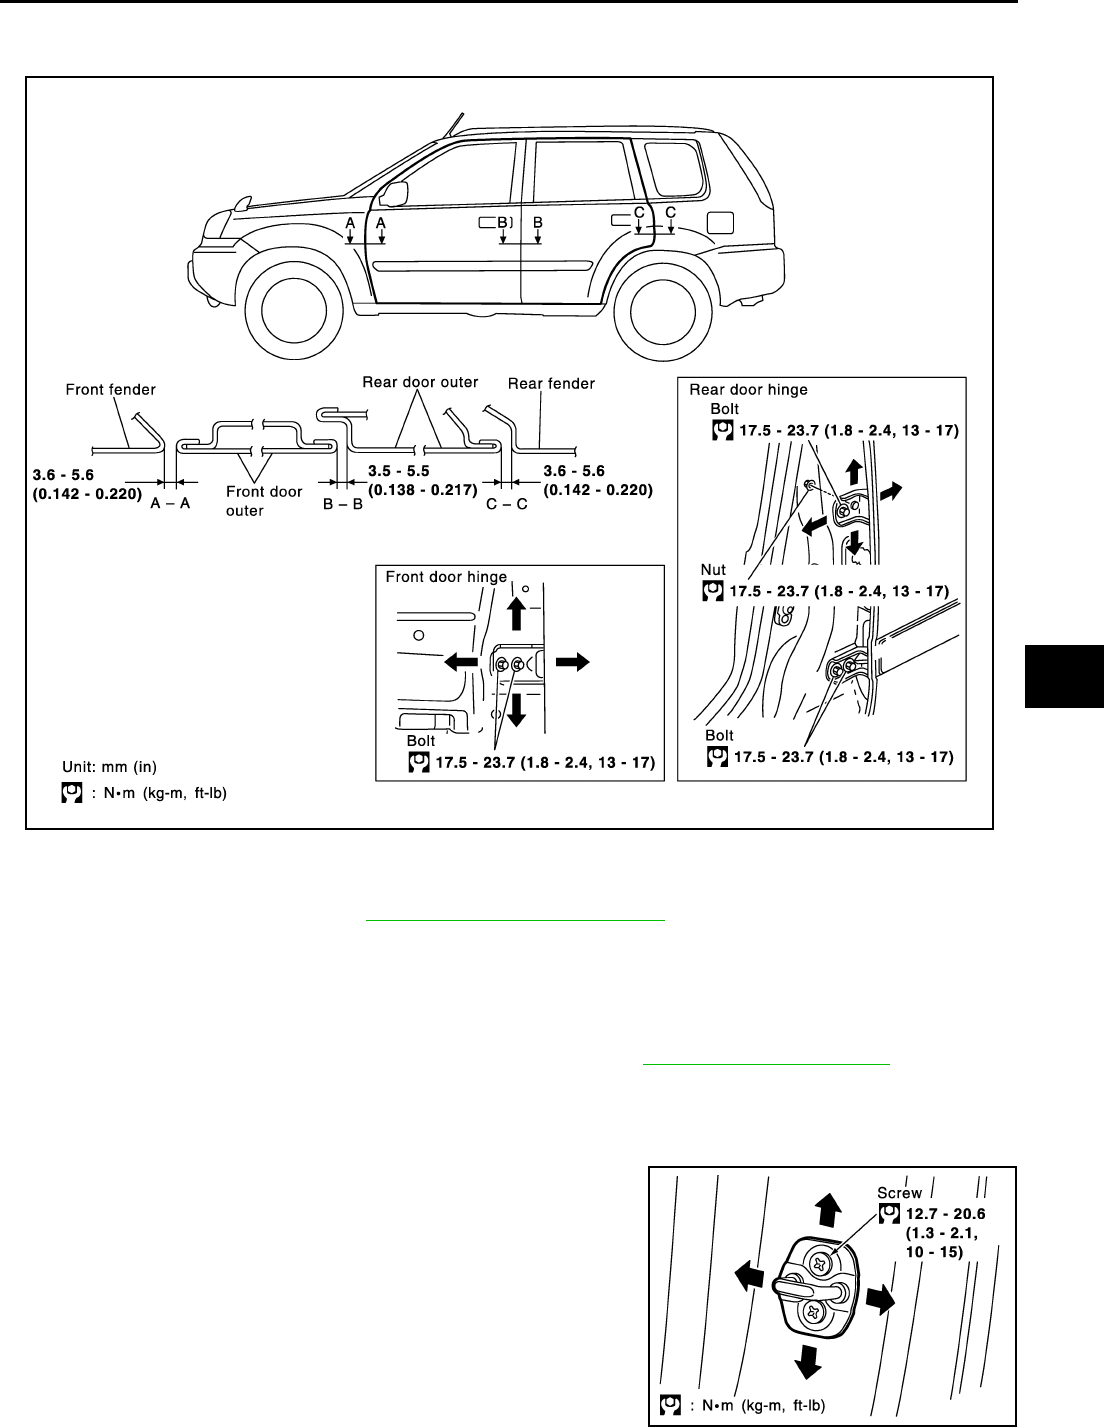 bg13 nissan xtrail t30 workshop manual 2005 (7) pdf nissan x trail wiring diagram pdf at creativeand.co